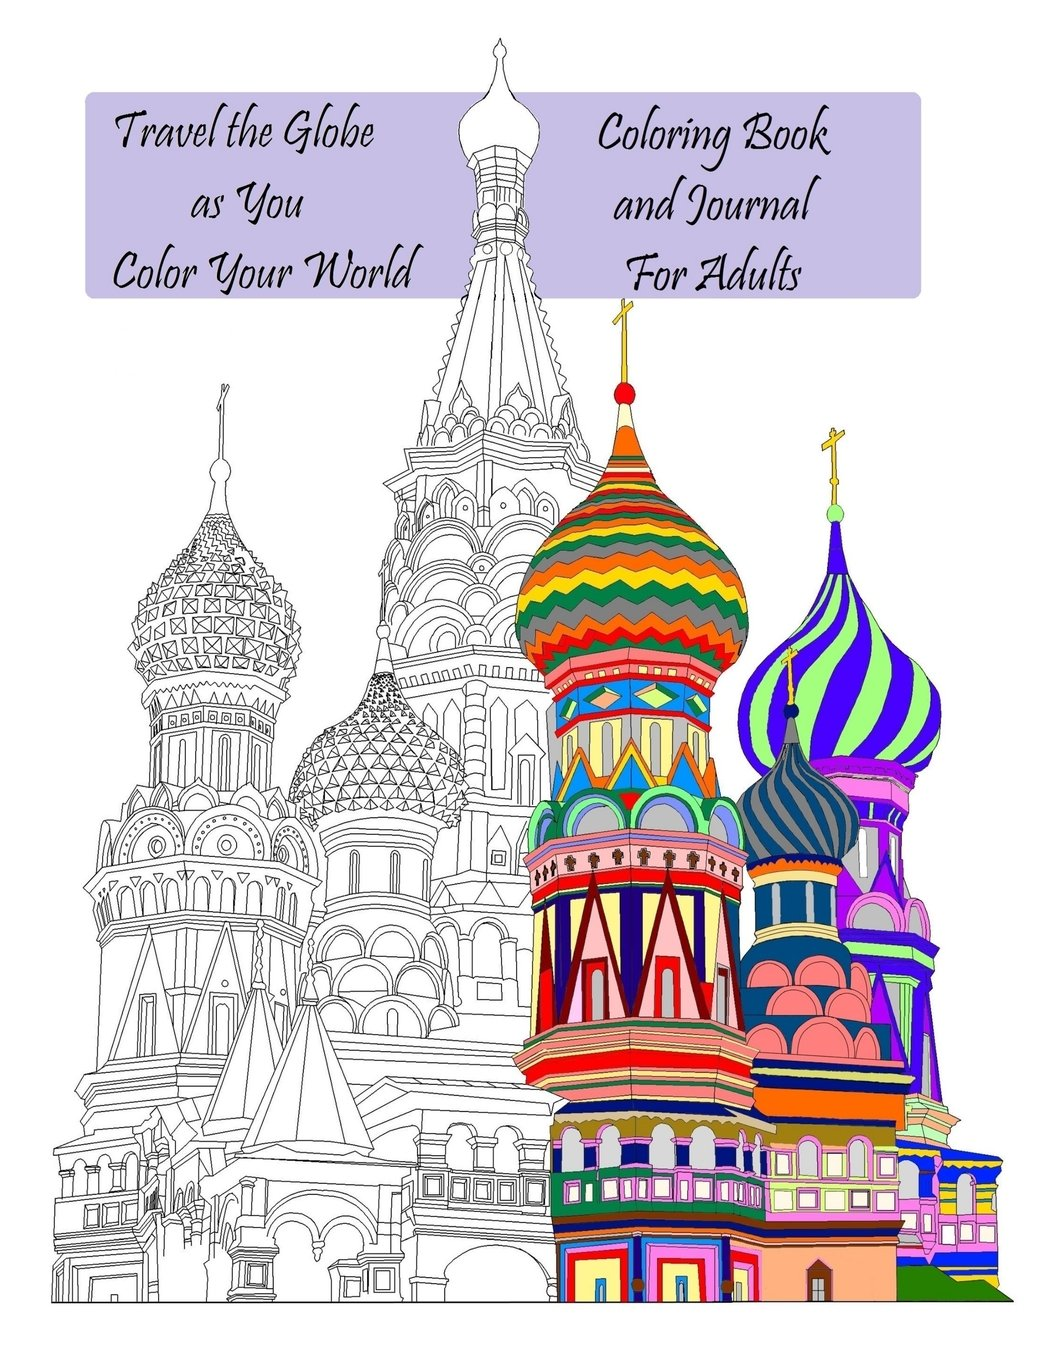 amazoncom travel the globe as you color your world coloring book and journal for adults 9781519124012 michele m phillips books - Travel Coloring Book